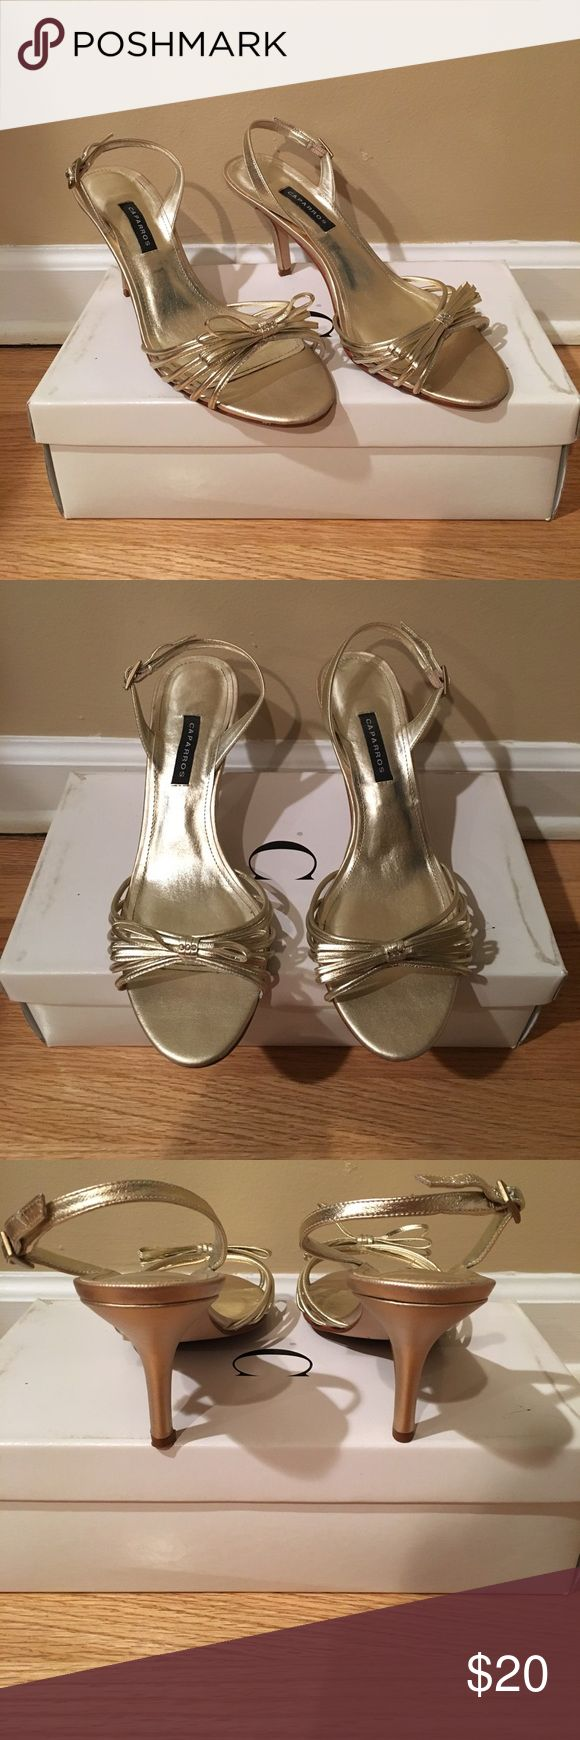 """Gold Heels with Bow detail size 8 Worn once are gold heels from Caparros in a size 8. These shoes have a bow detail on the front. The back of the shoes has an adjustable strap to secure your heel into the shoe. Heel Height-3"""" Caparros Shoes Heels"""